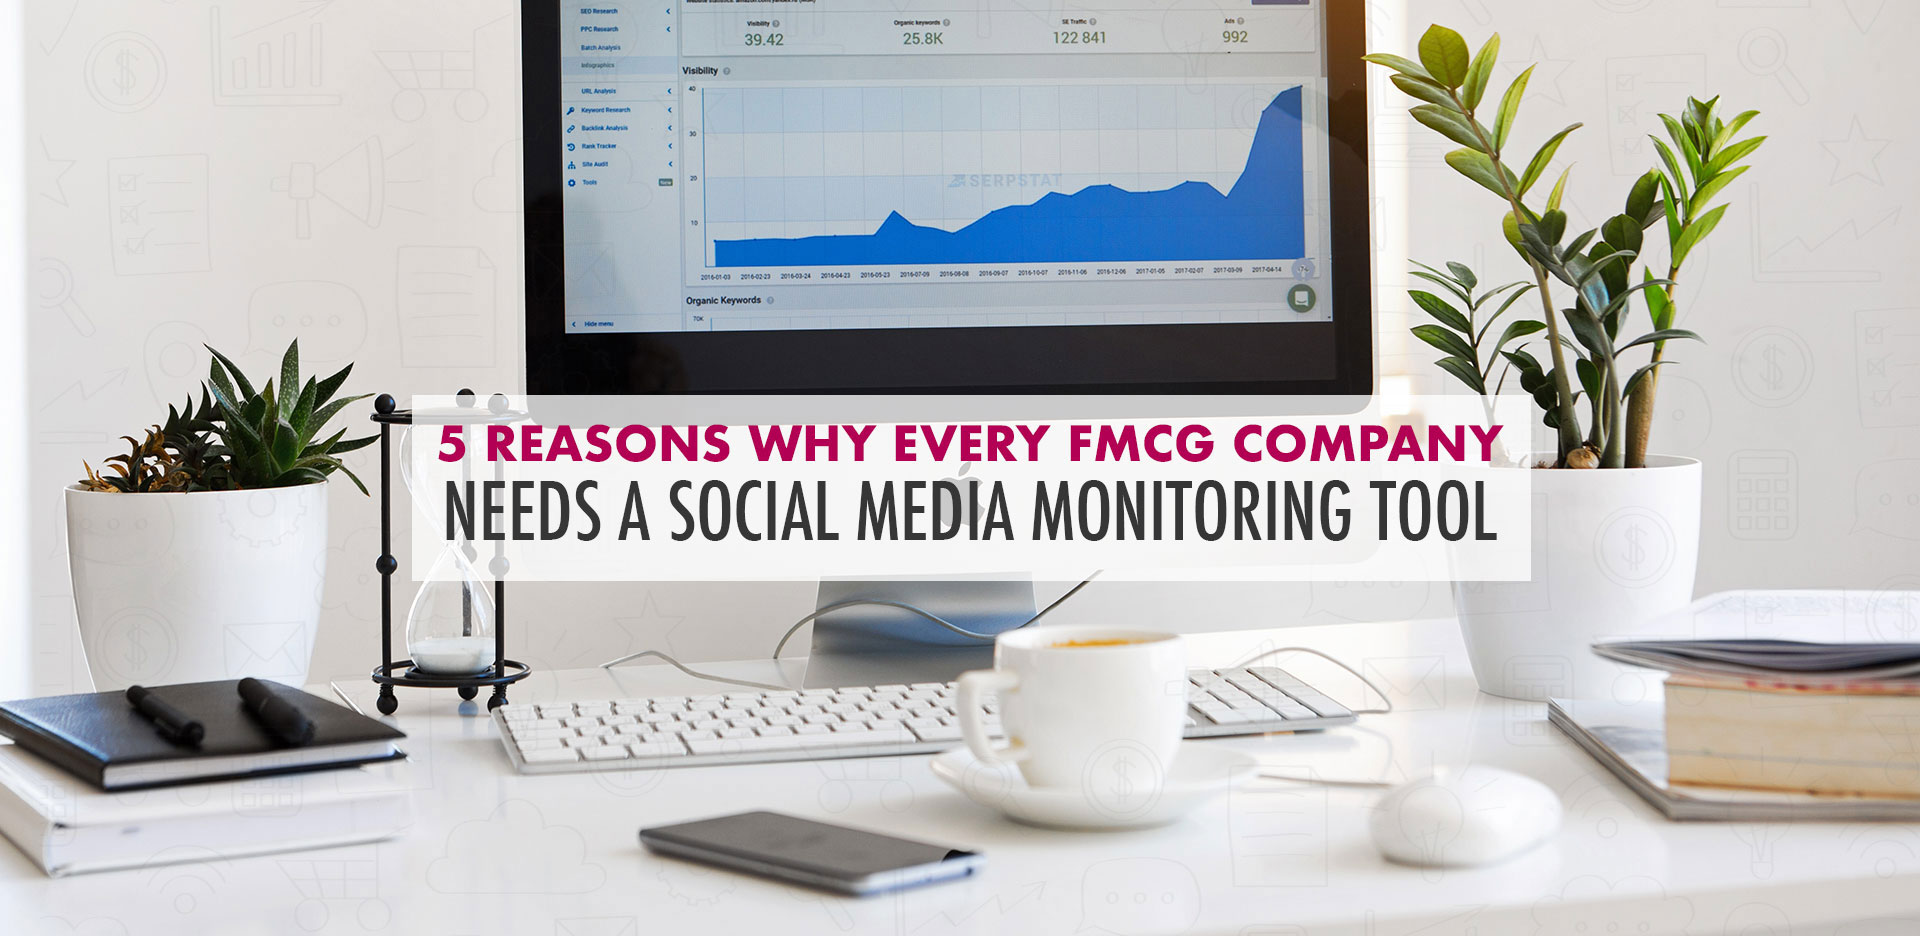 5 Reasons Why Every FMCG Company Needs a Social Media Monitoring Tool